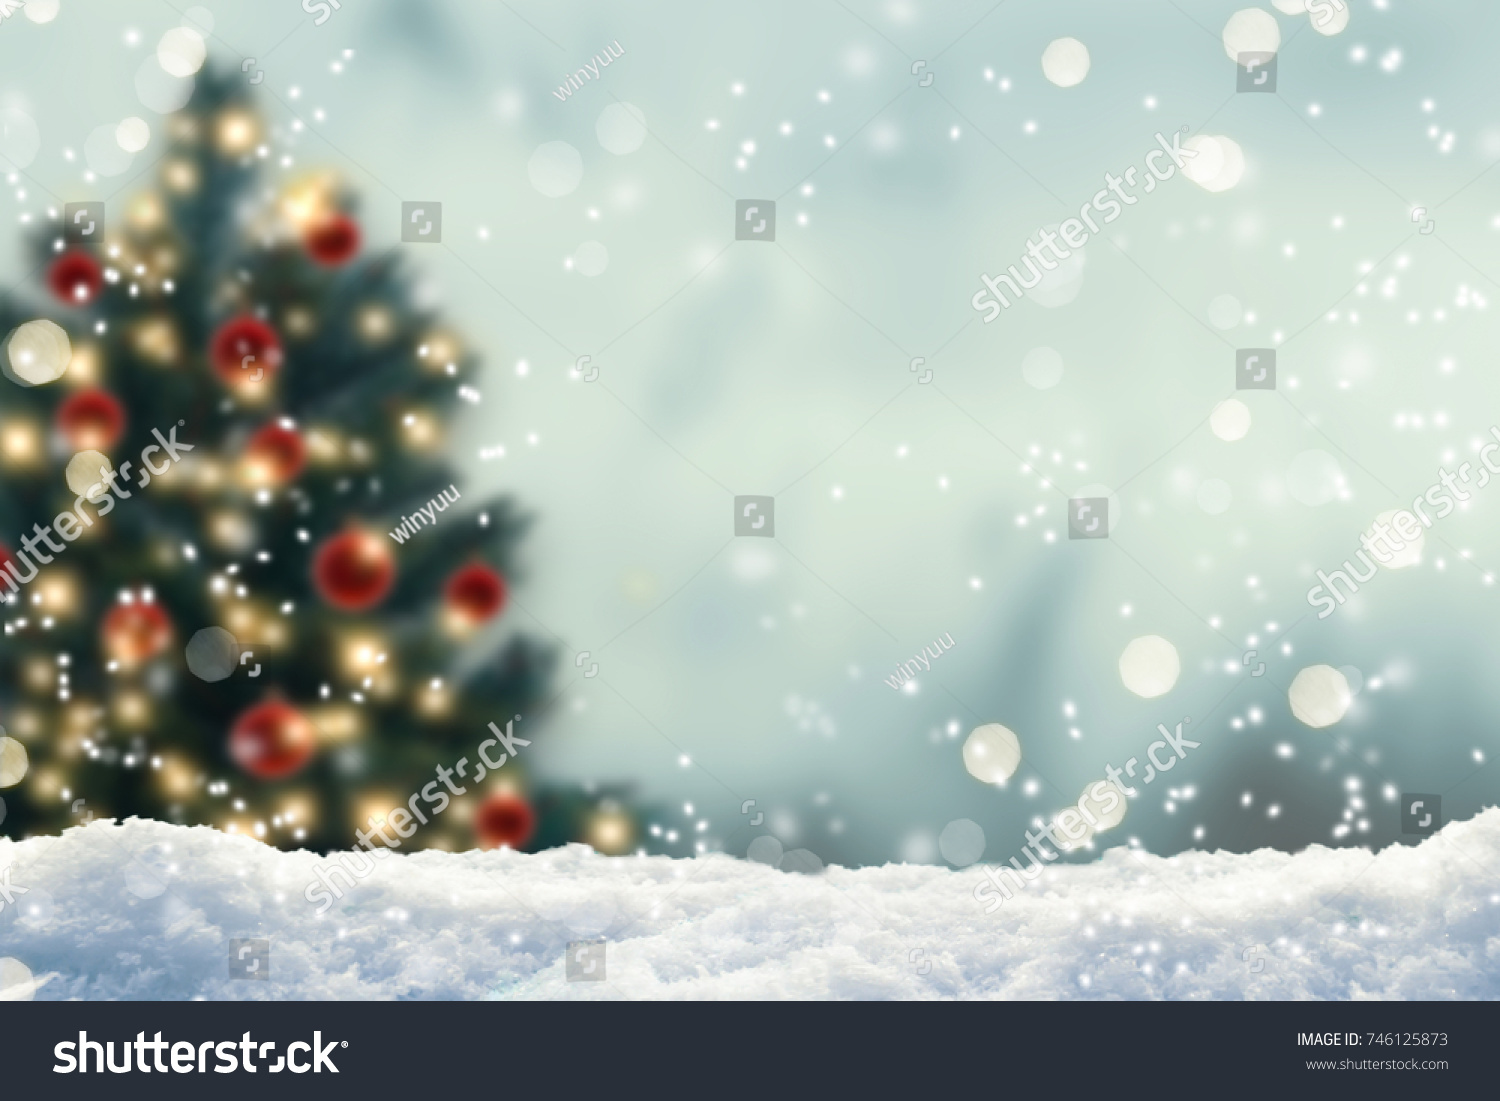 blurred christmas tree, snow, christmas, background #746125873 - 123PhotoFree.com